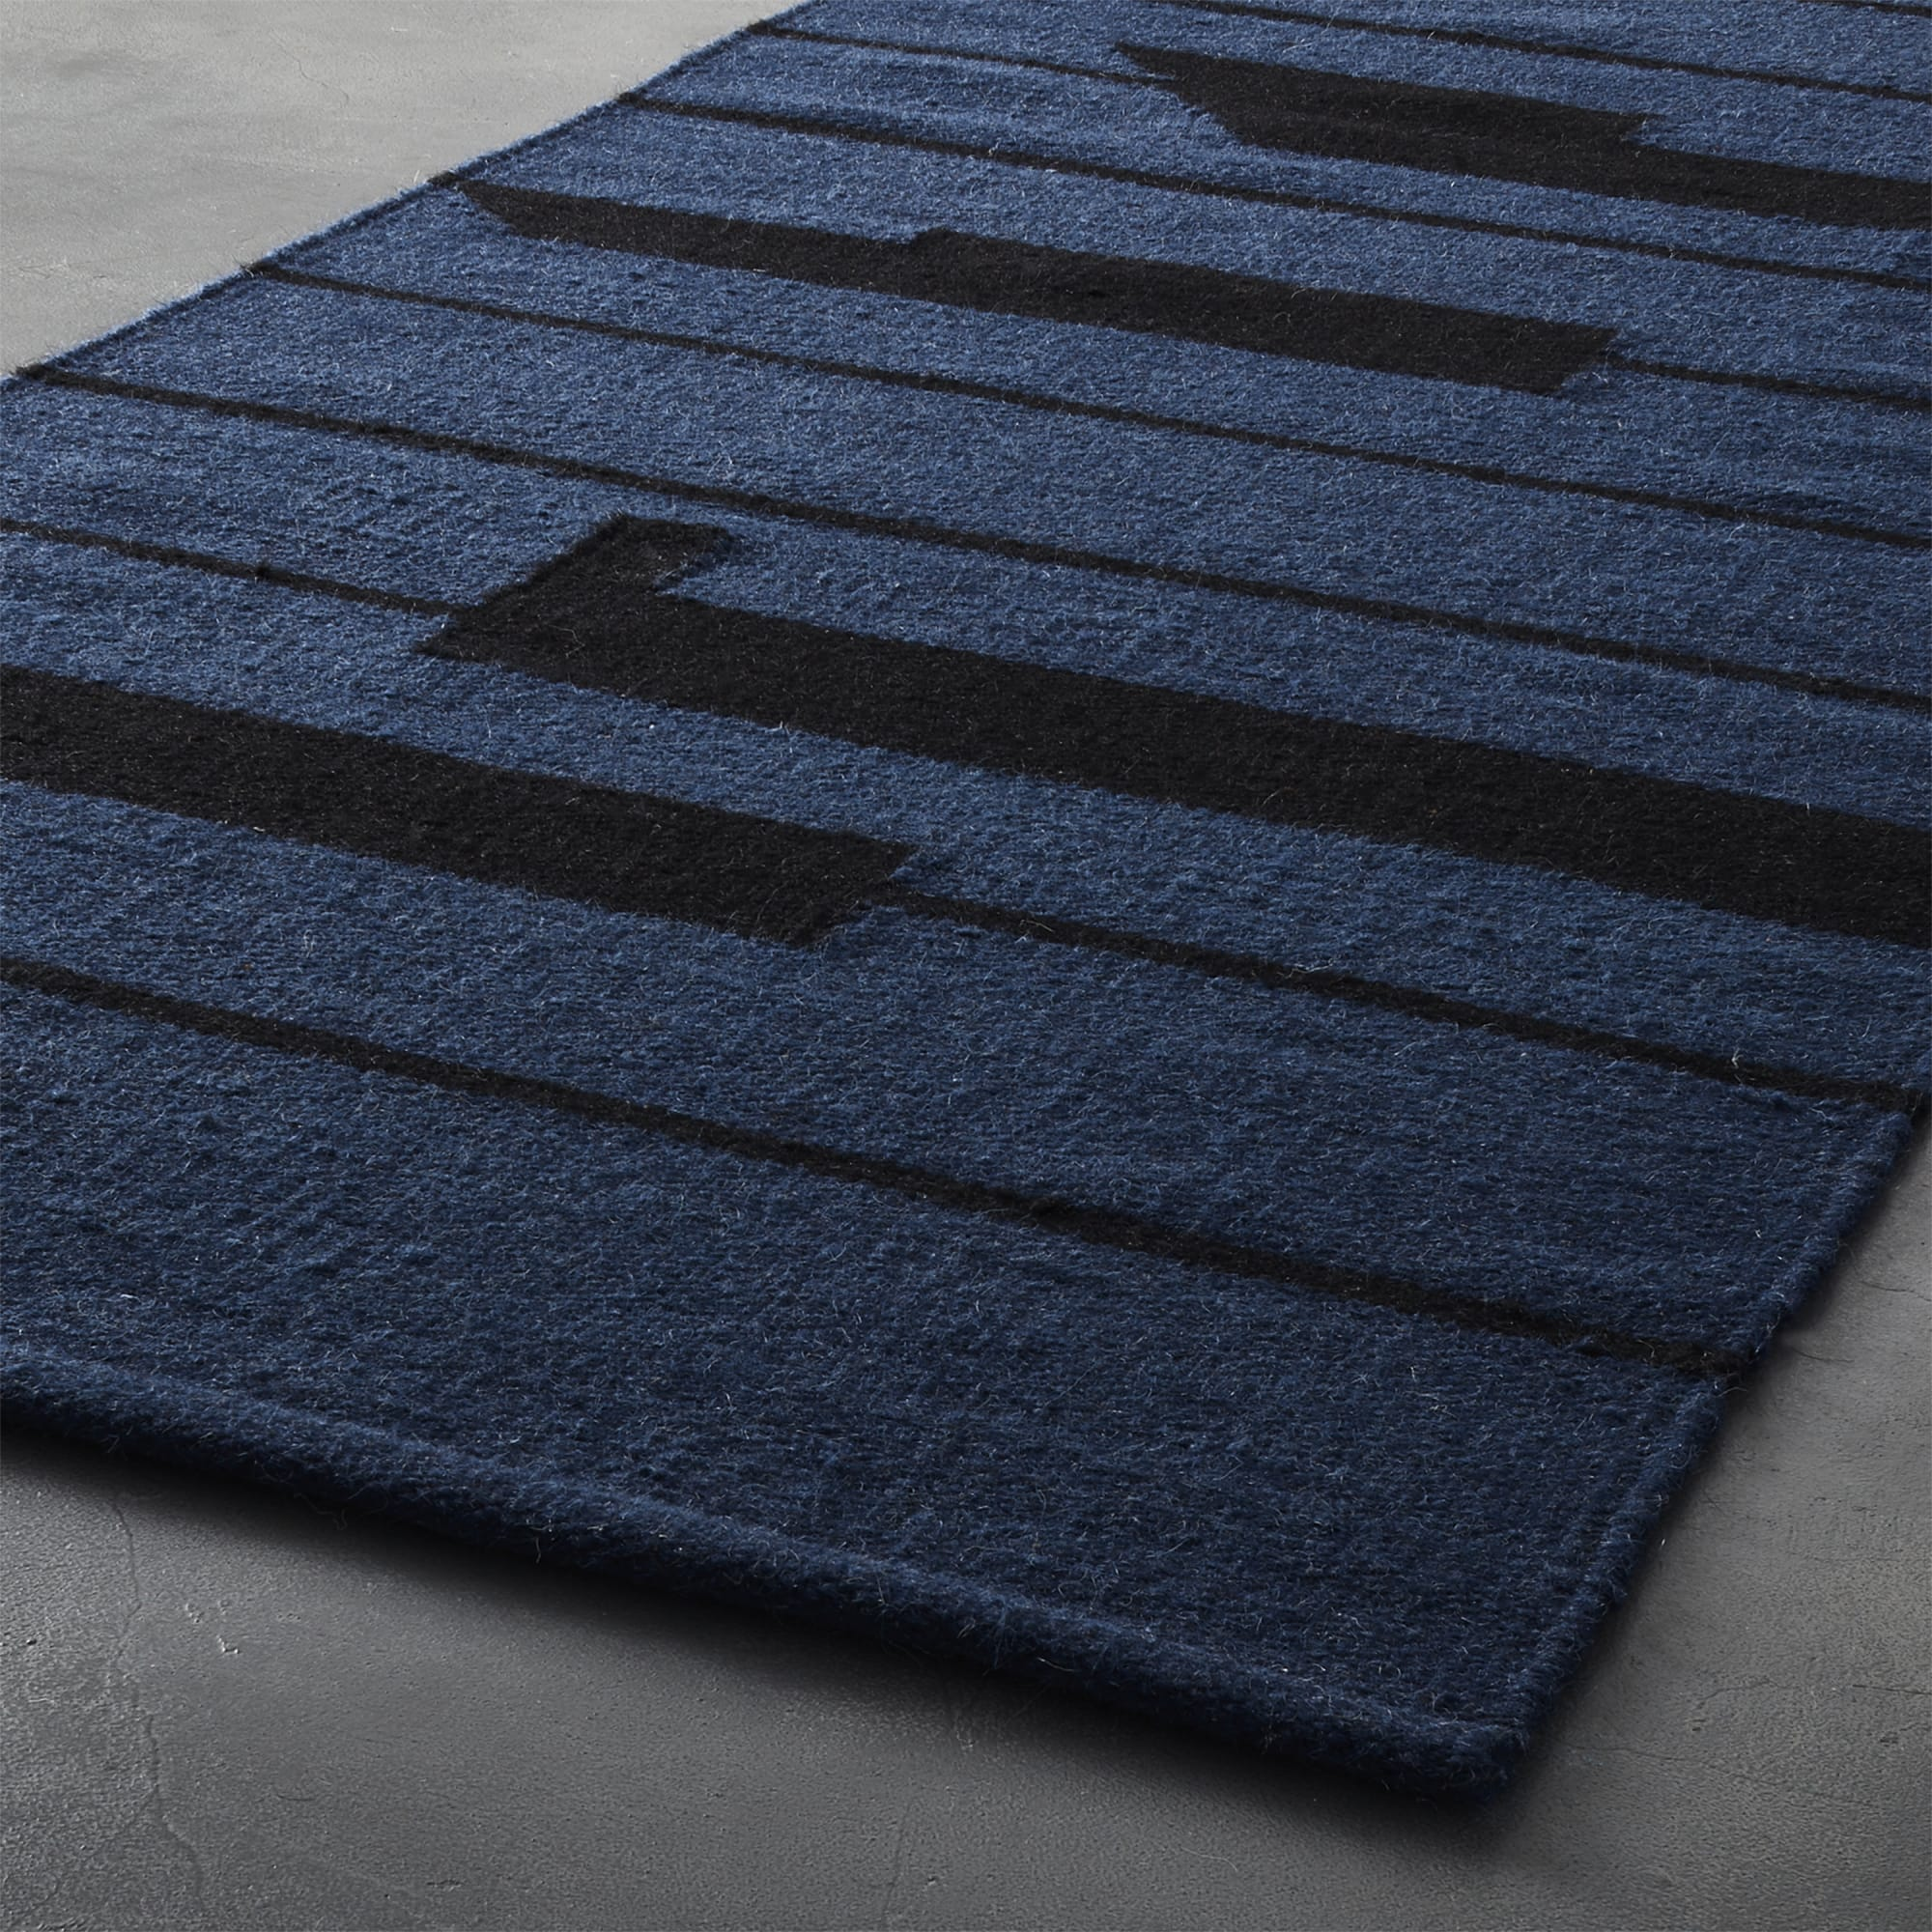 Rugs by Namavari seen at CB2, Berkeley - Rise Blue and Black Rug